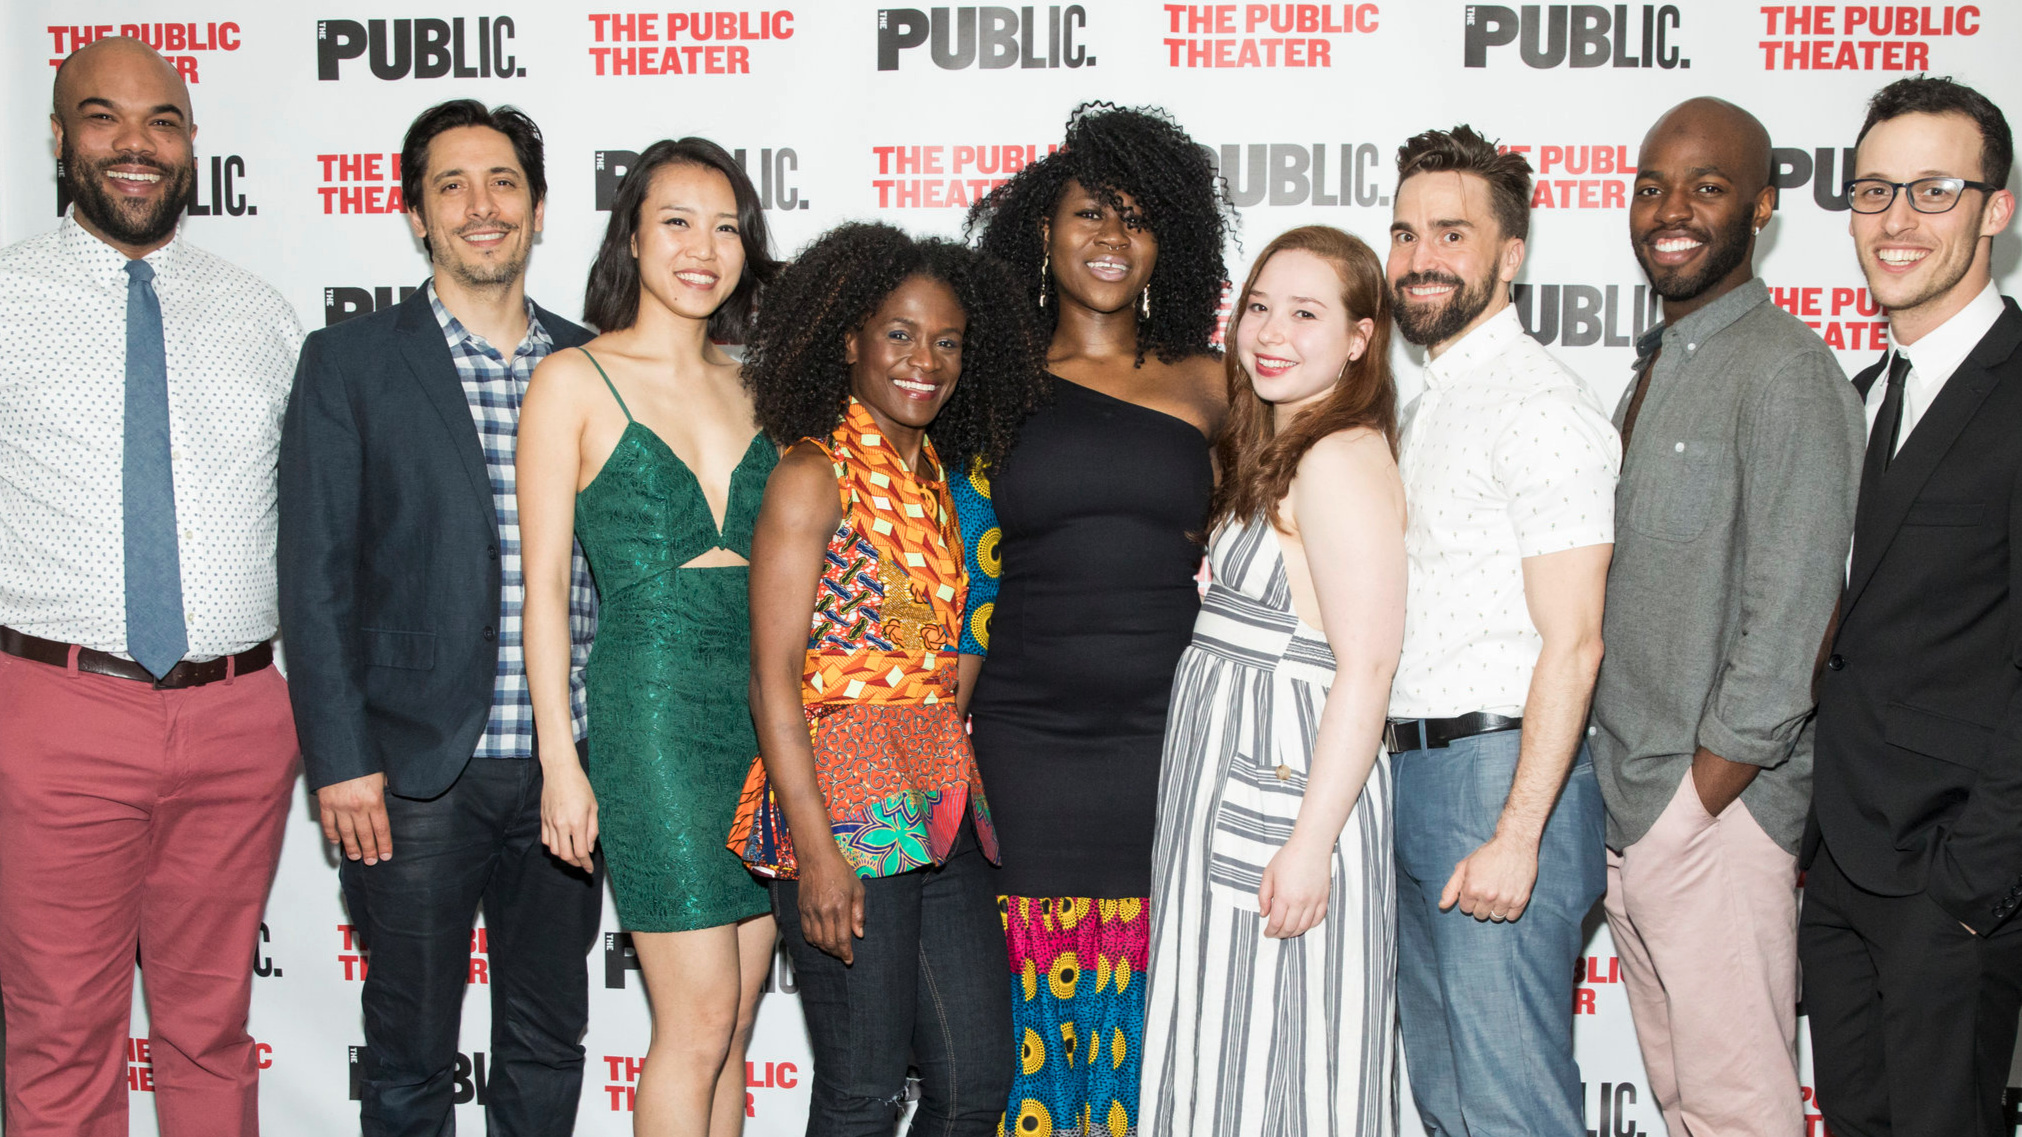 Opening Night of HENRY V at THE PUBLIC THEATER